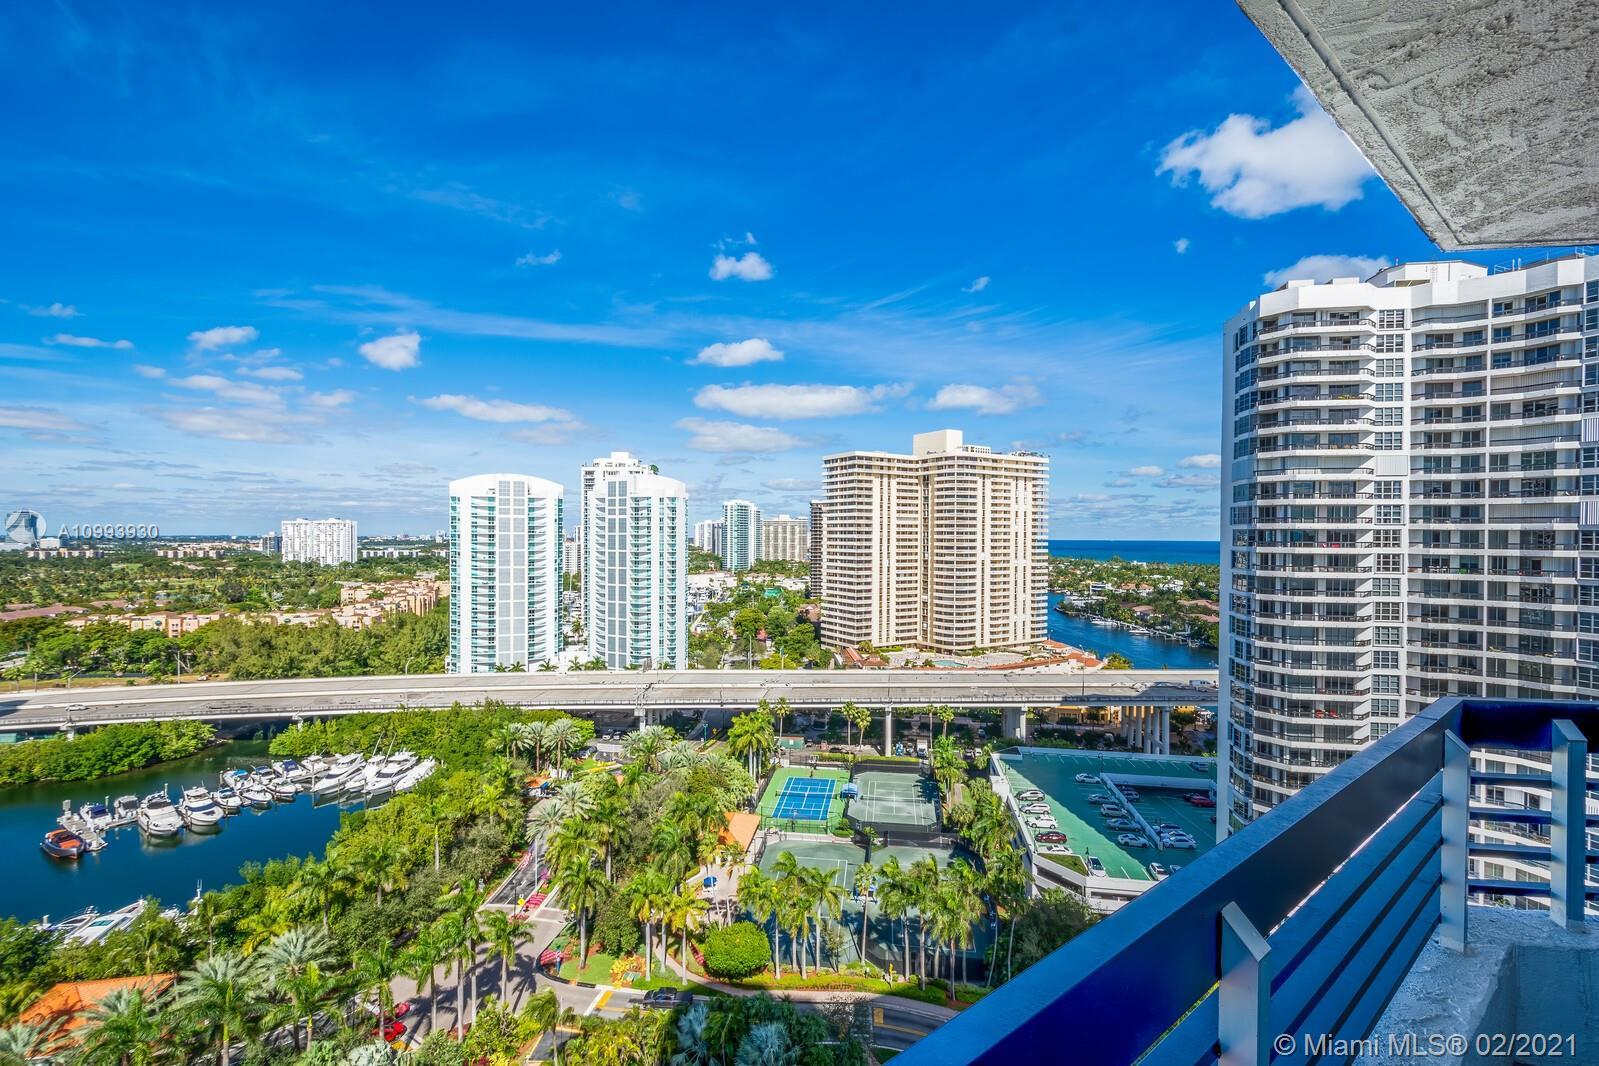 Amazing views from this 22nd floor unit at Mystic Point! Rap around balcony overlooking the city of